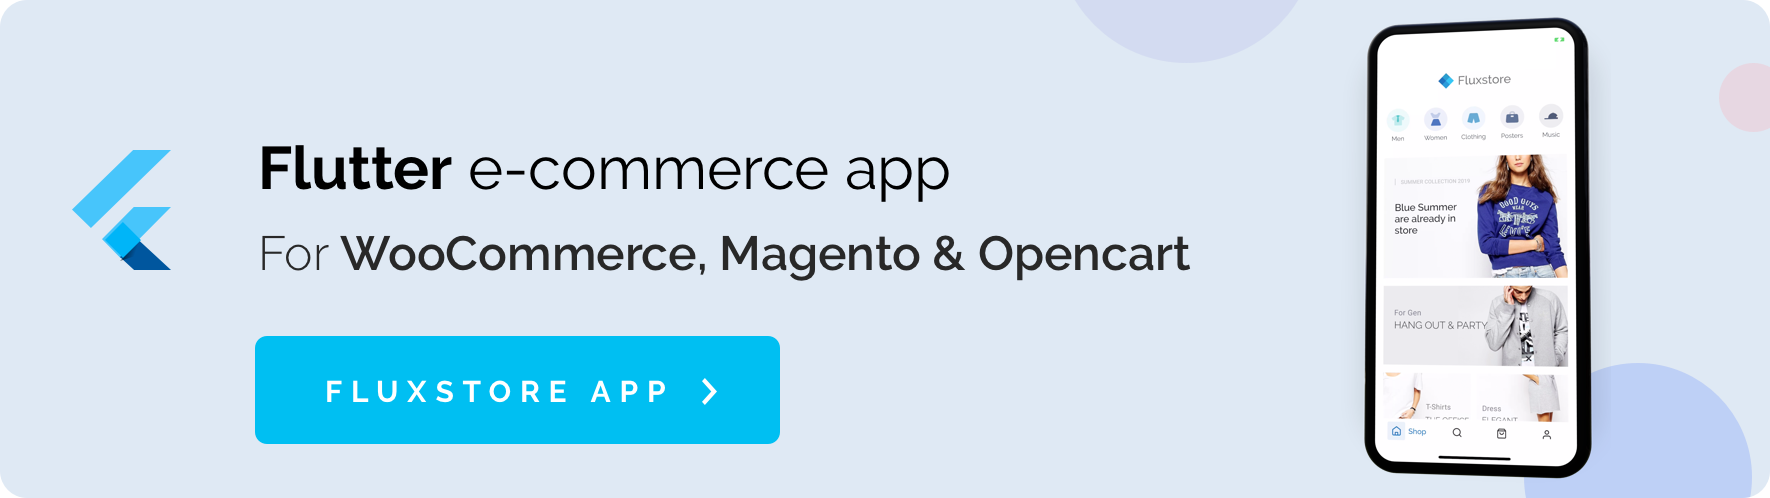 CeStore - ReactJS web app & React Native mobile app for e-commerce - 17